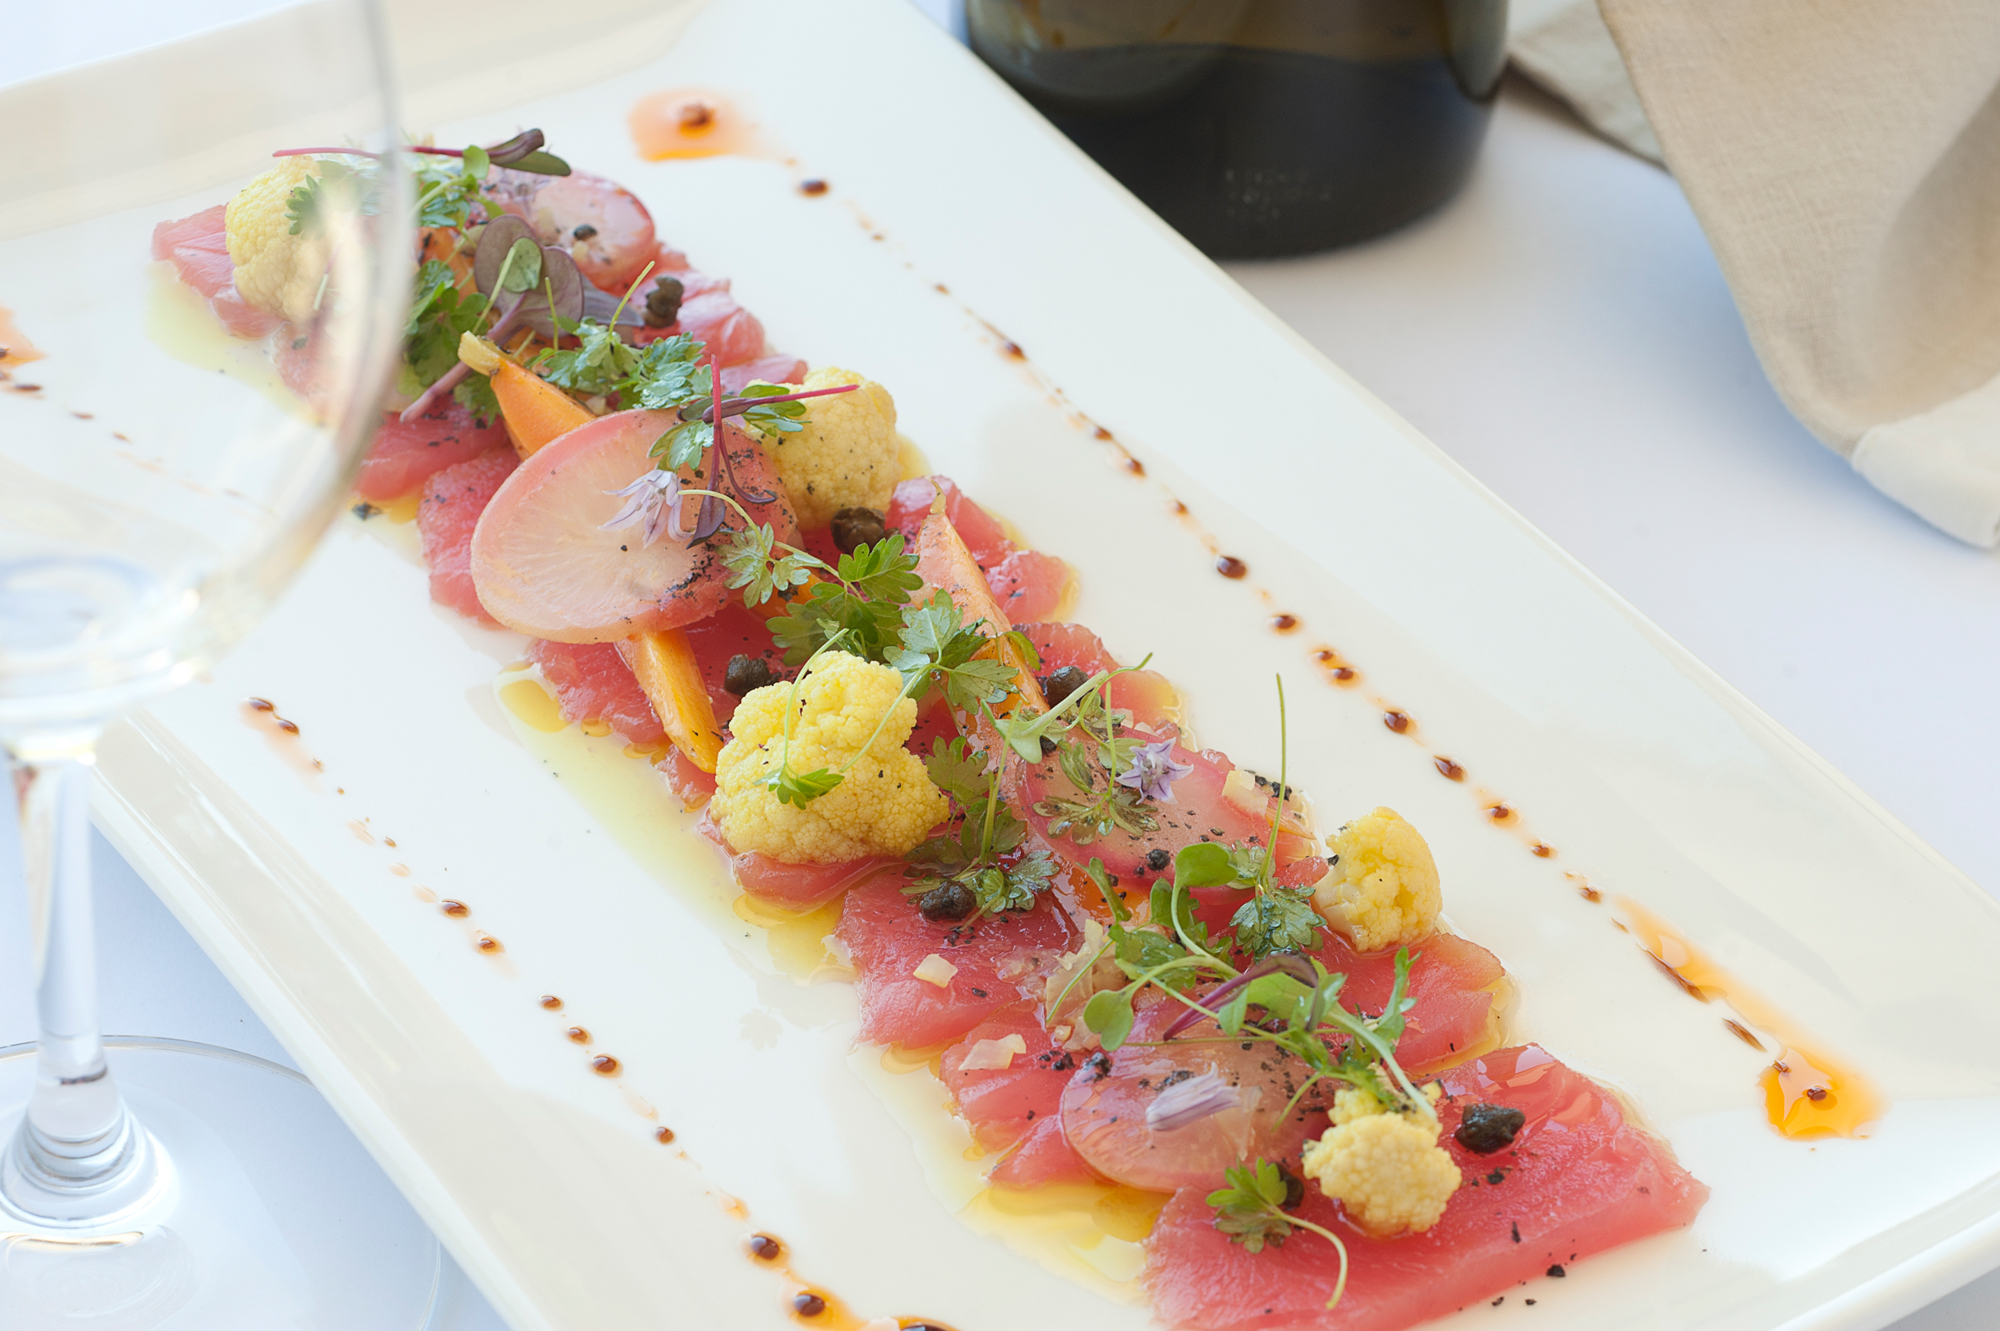 Carpaccio of Kingfish with Picalilli, capers and white balsamic dressing